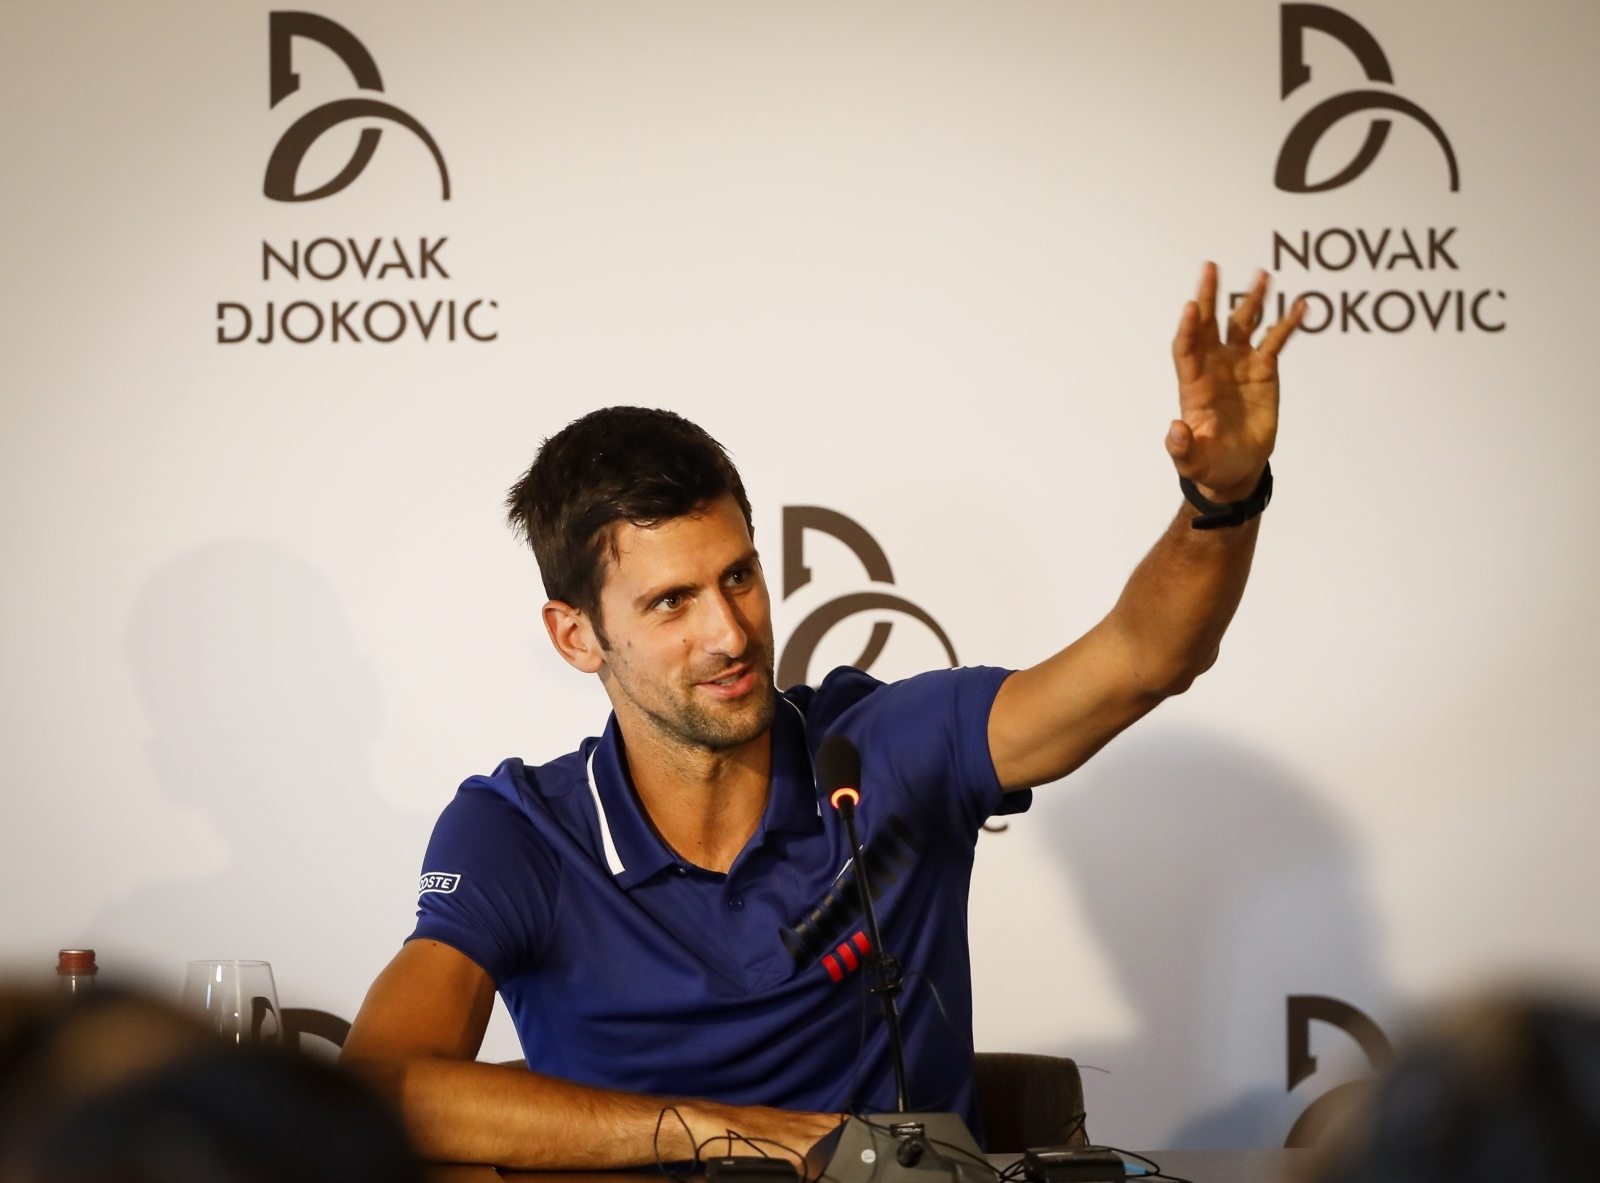 Injury stricken Novak Djokovic confirms addition of Radek Stepanek